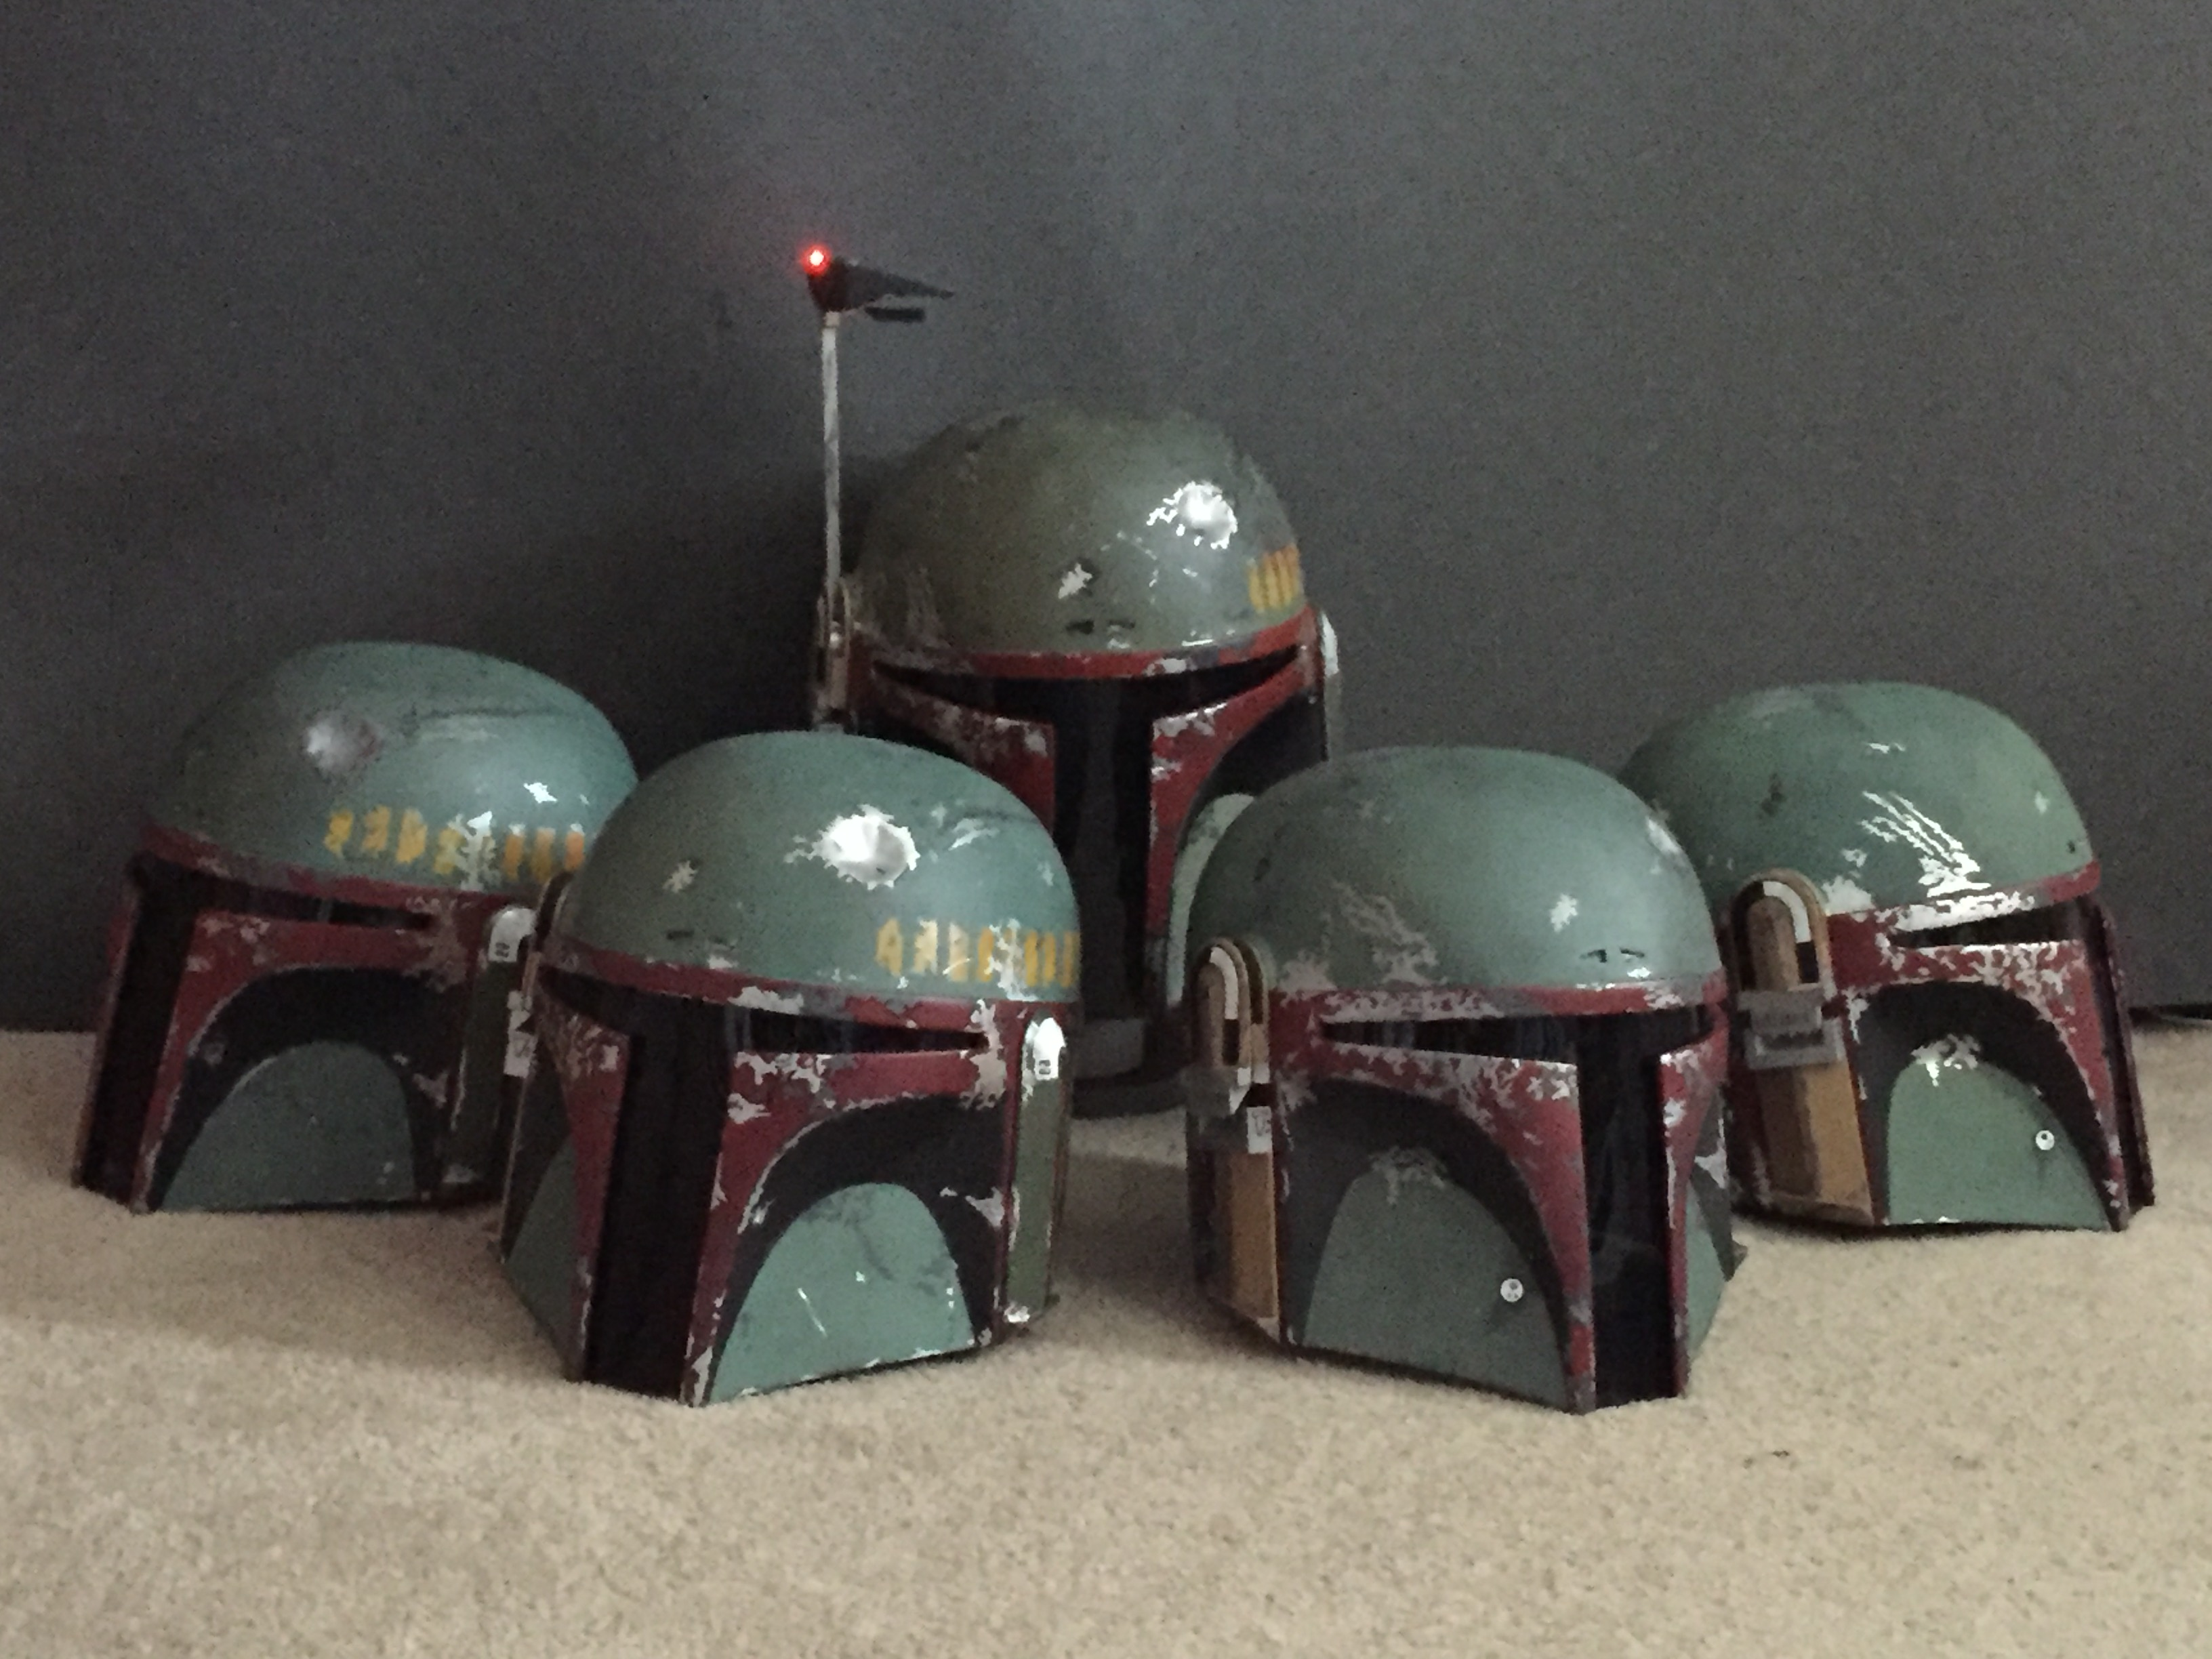 The empire army